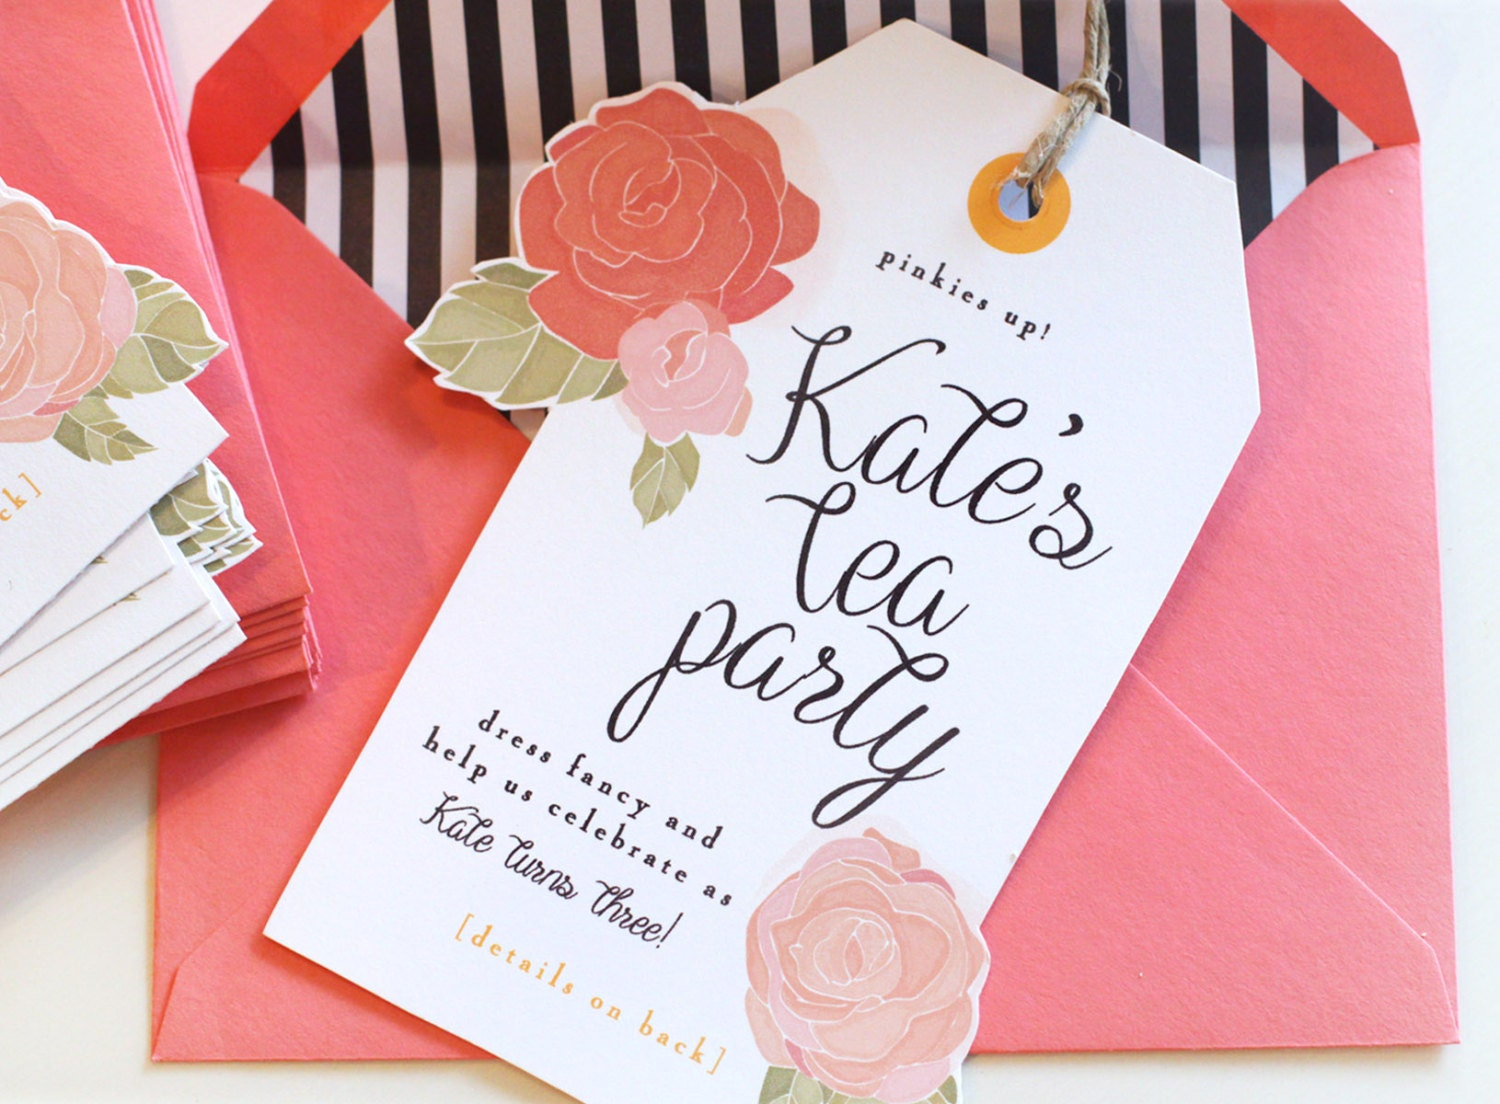 It's just an image of Gratifying Printable Tea Party Invitations